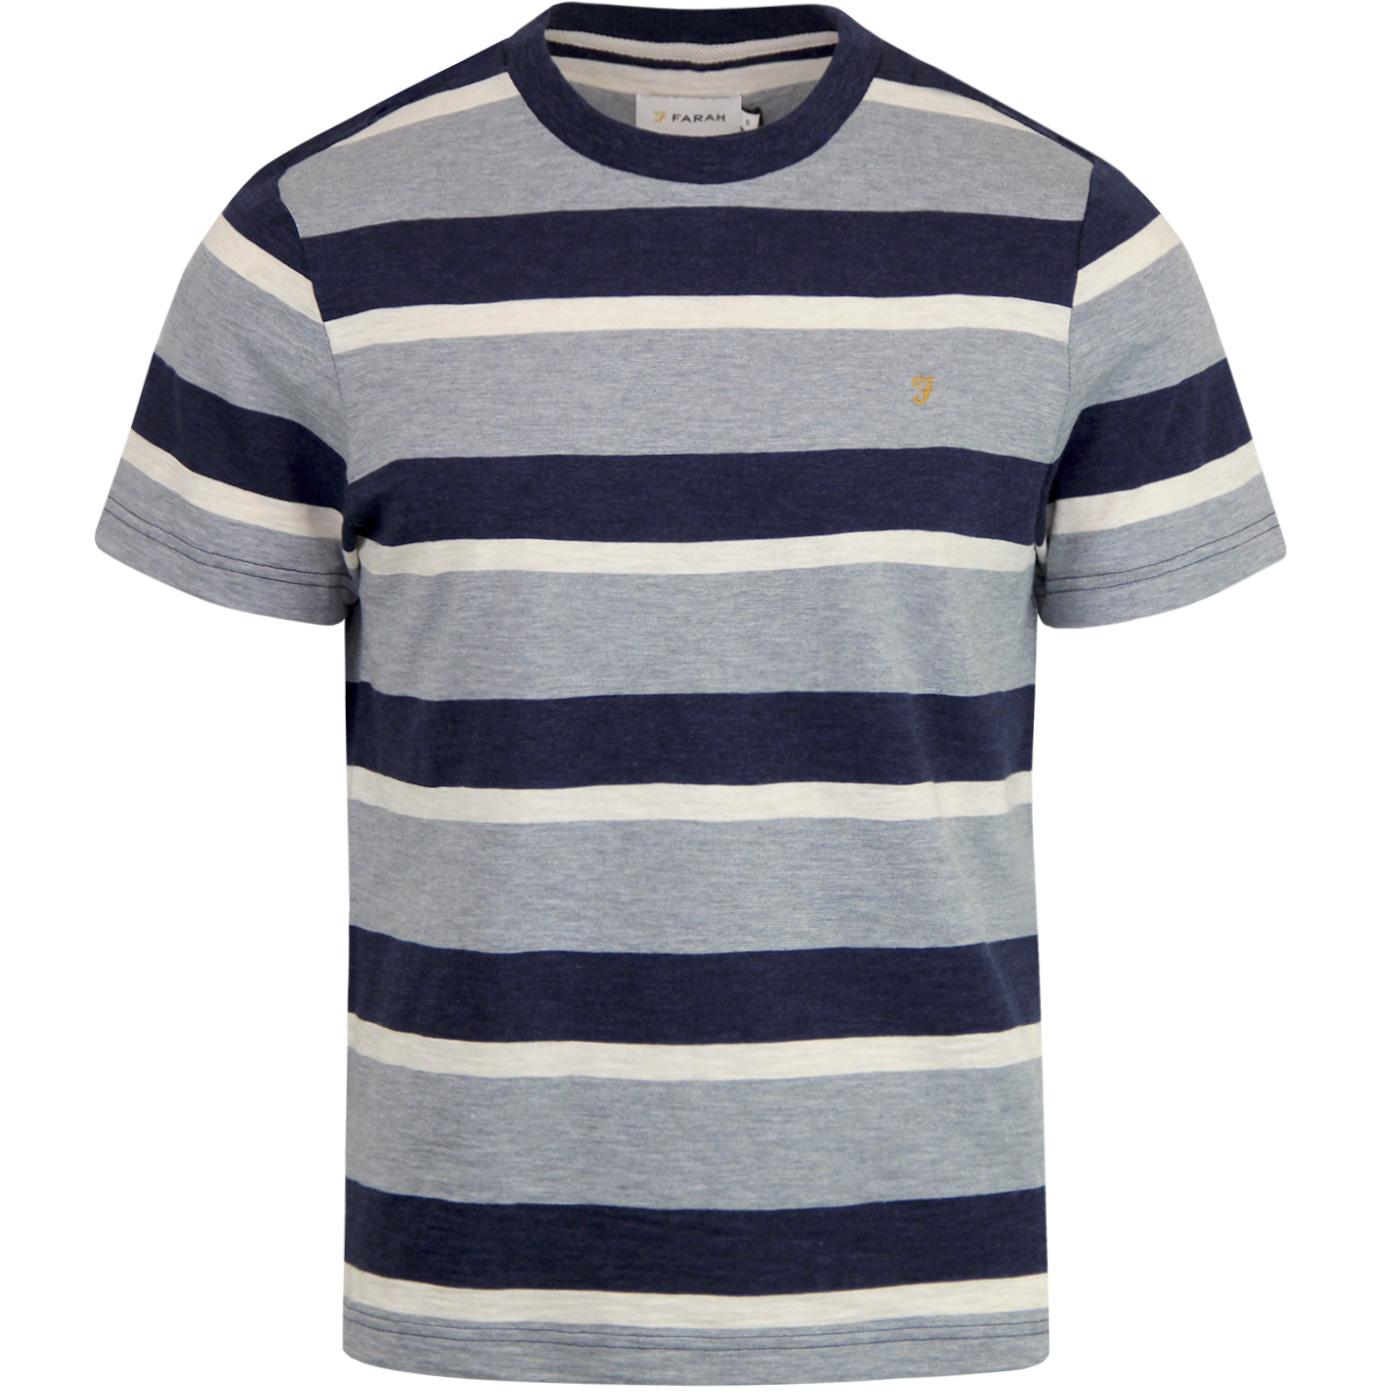 FARAH Mens Retro Mod Celtic Stripe Marl Tee SHADOW